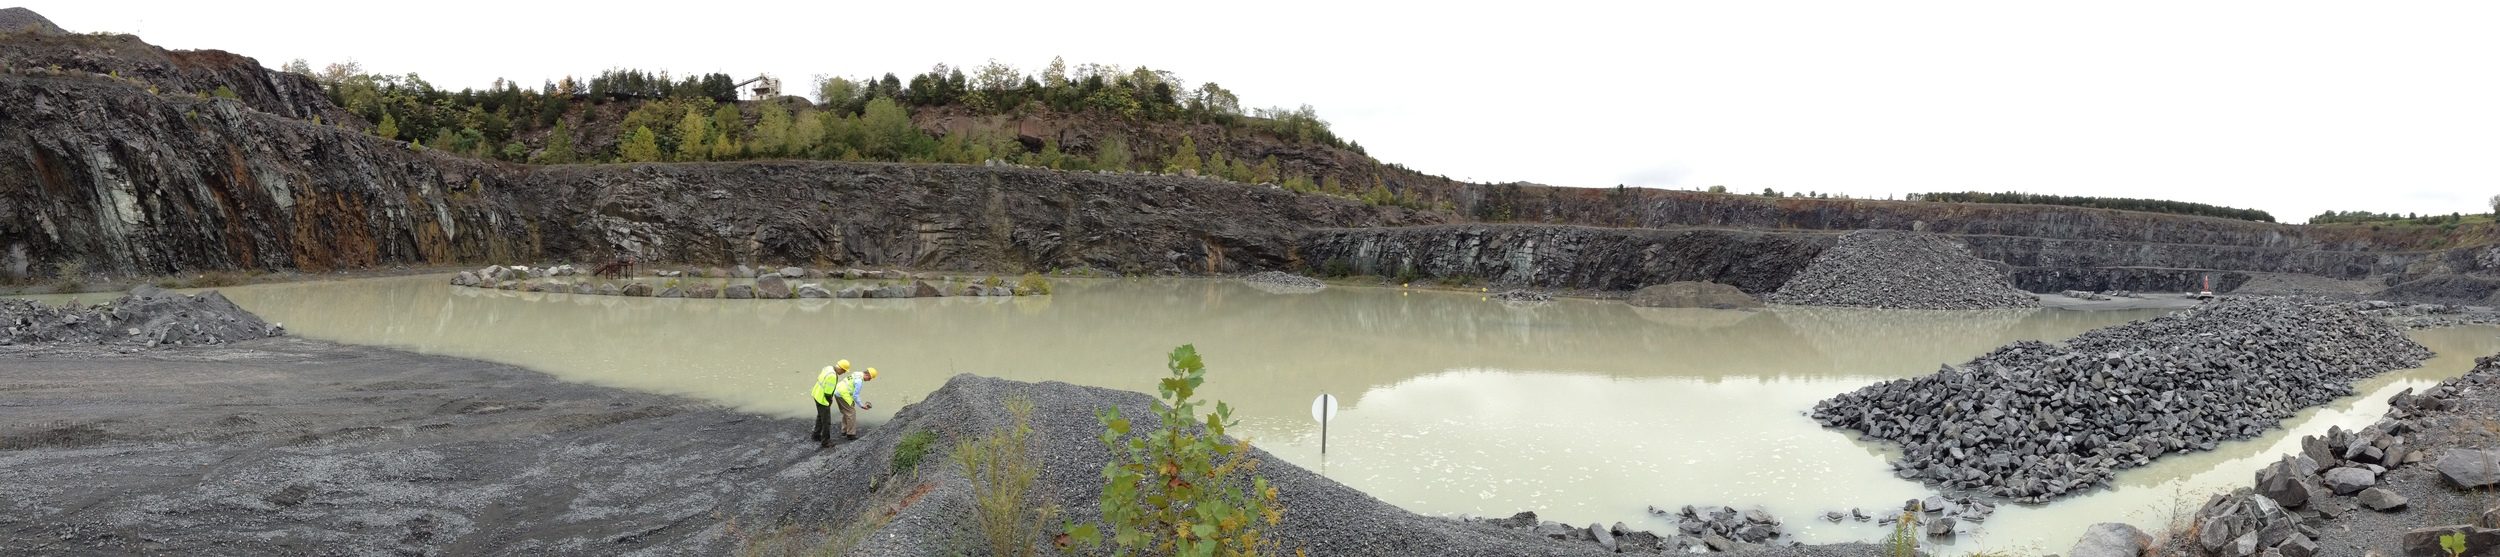 DDOT and NPS representatives inspect stone at the Luck Stone Goose Creek Quarry in Leesburg, Virginia on Wednesday.